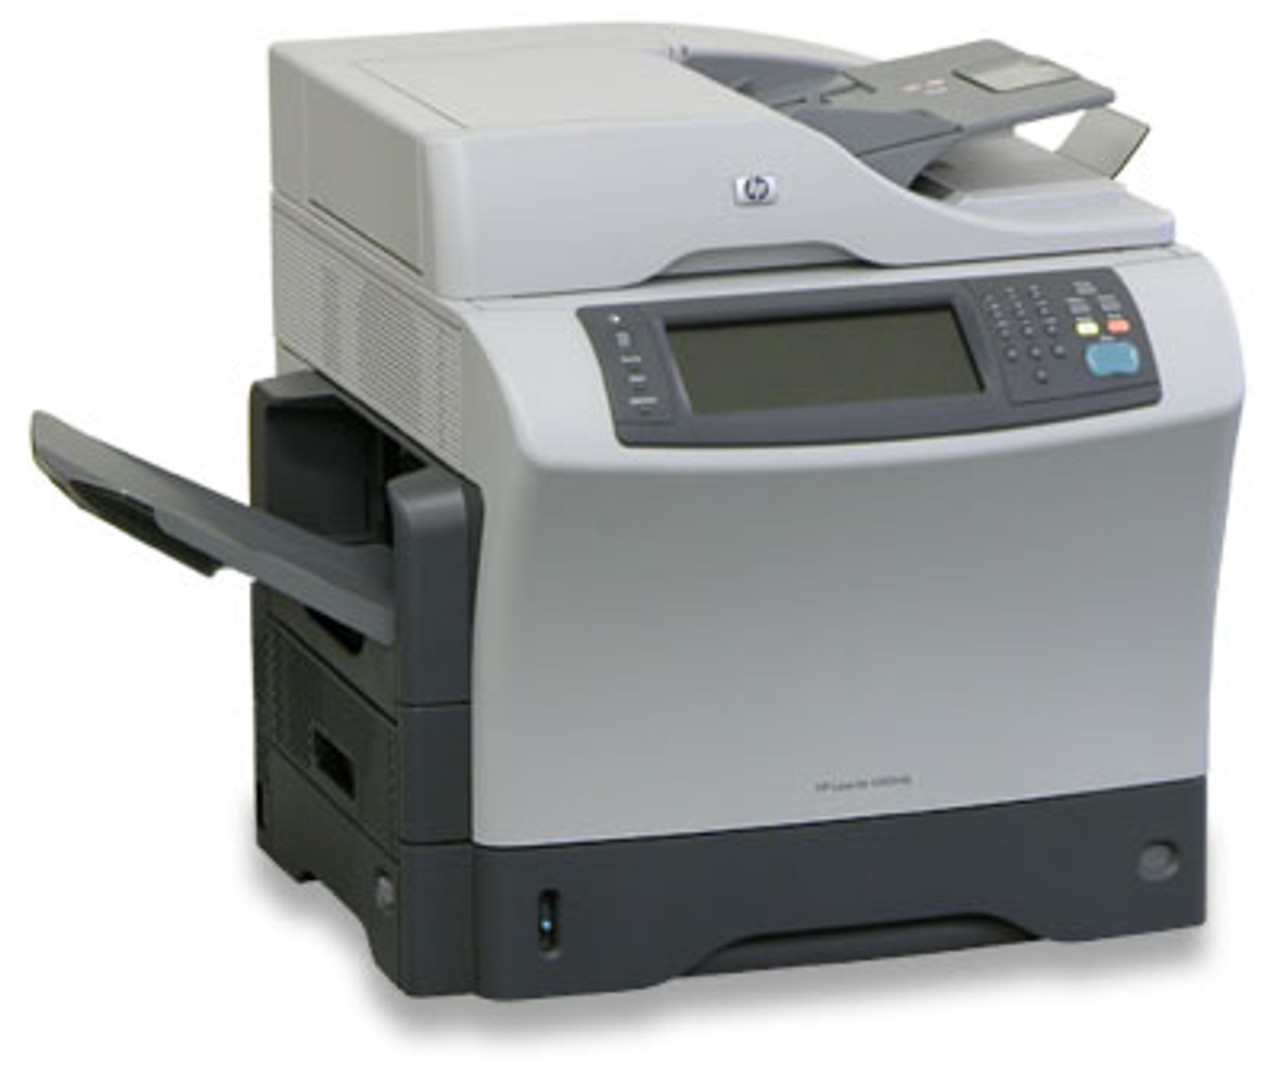 HP LaserJet M4345 MFP - CB425A - HP Laser Printer for sale